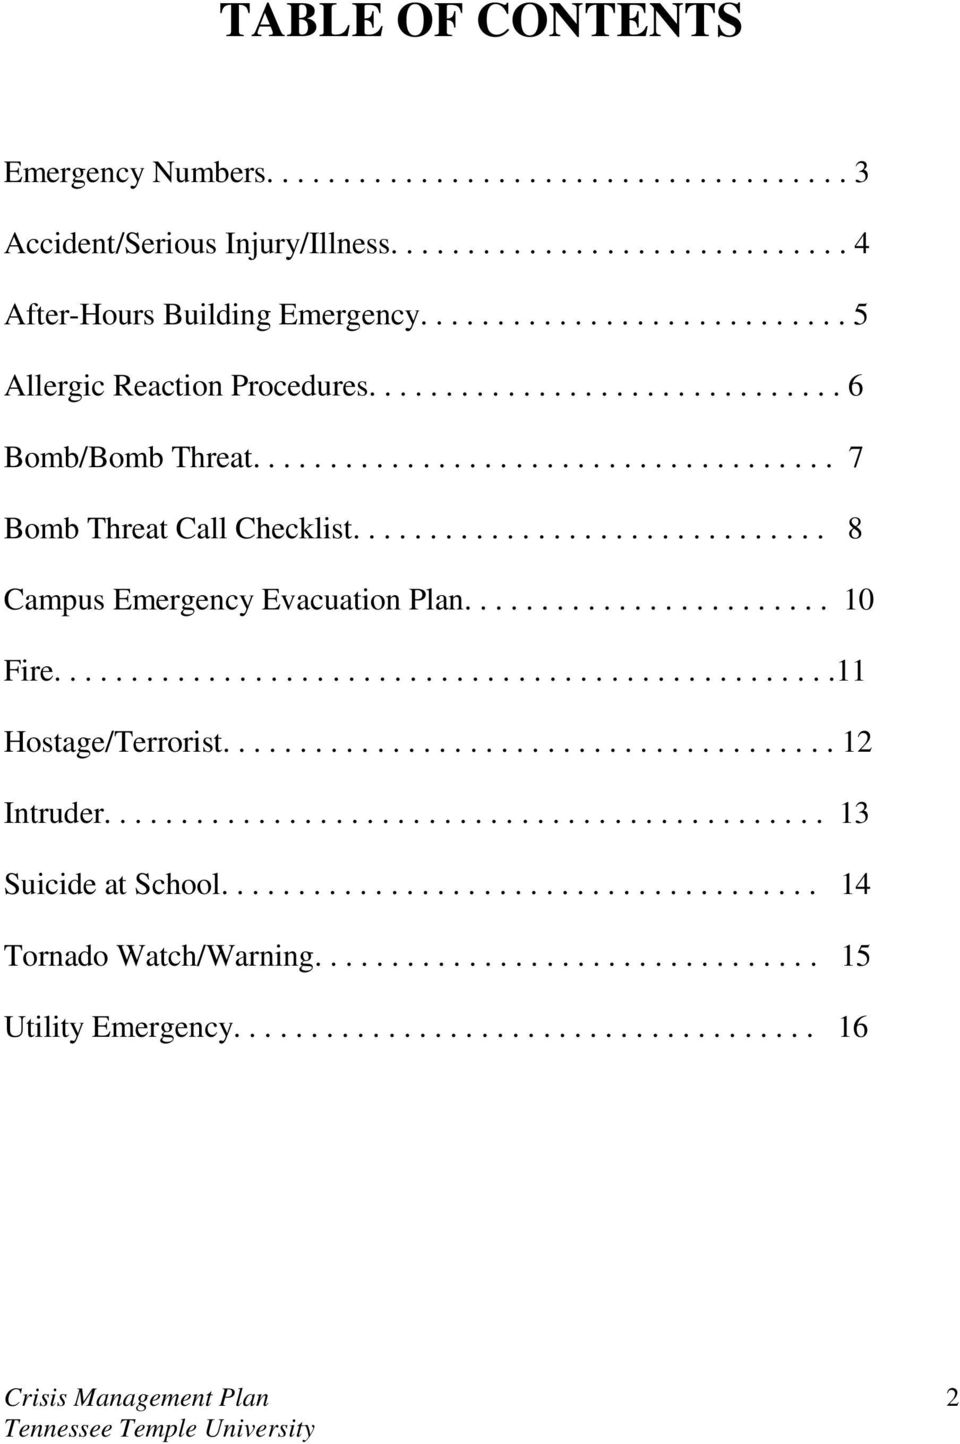 .............................. 8 Campus Emergency Evacuation Plan........................ 10 Fire...................................................11 Hostage/Terrorist........................................ 12 Intruder.